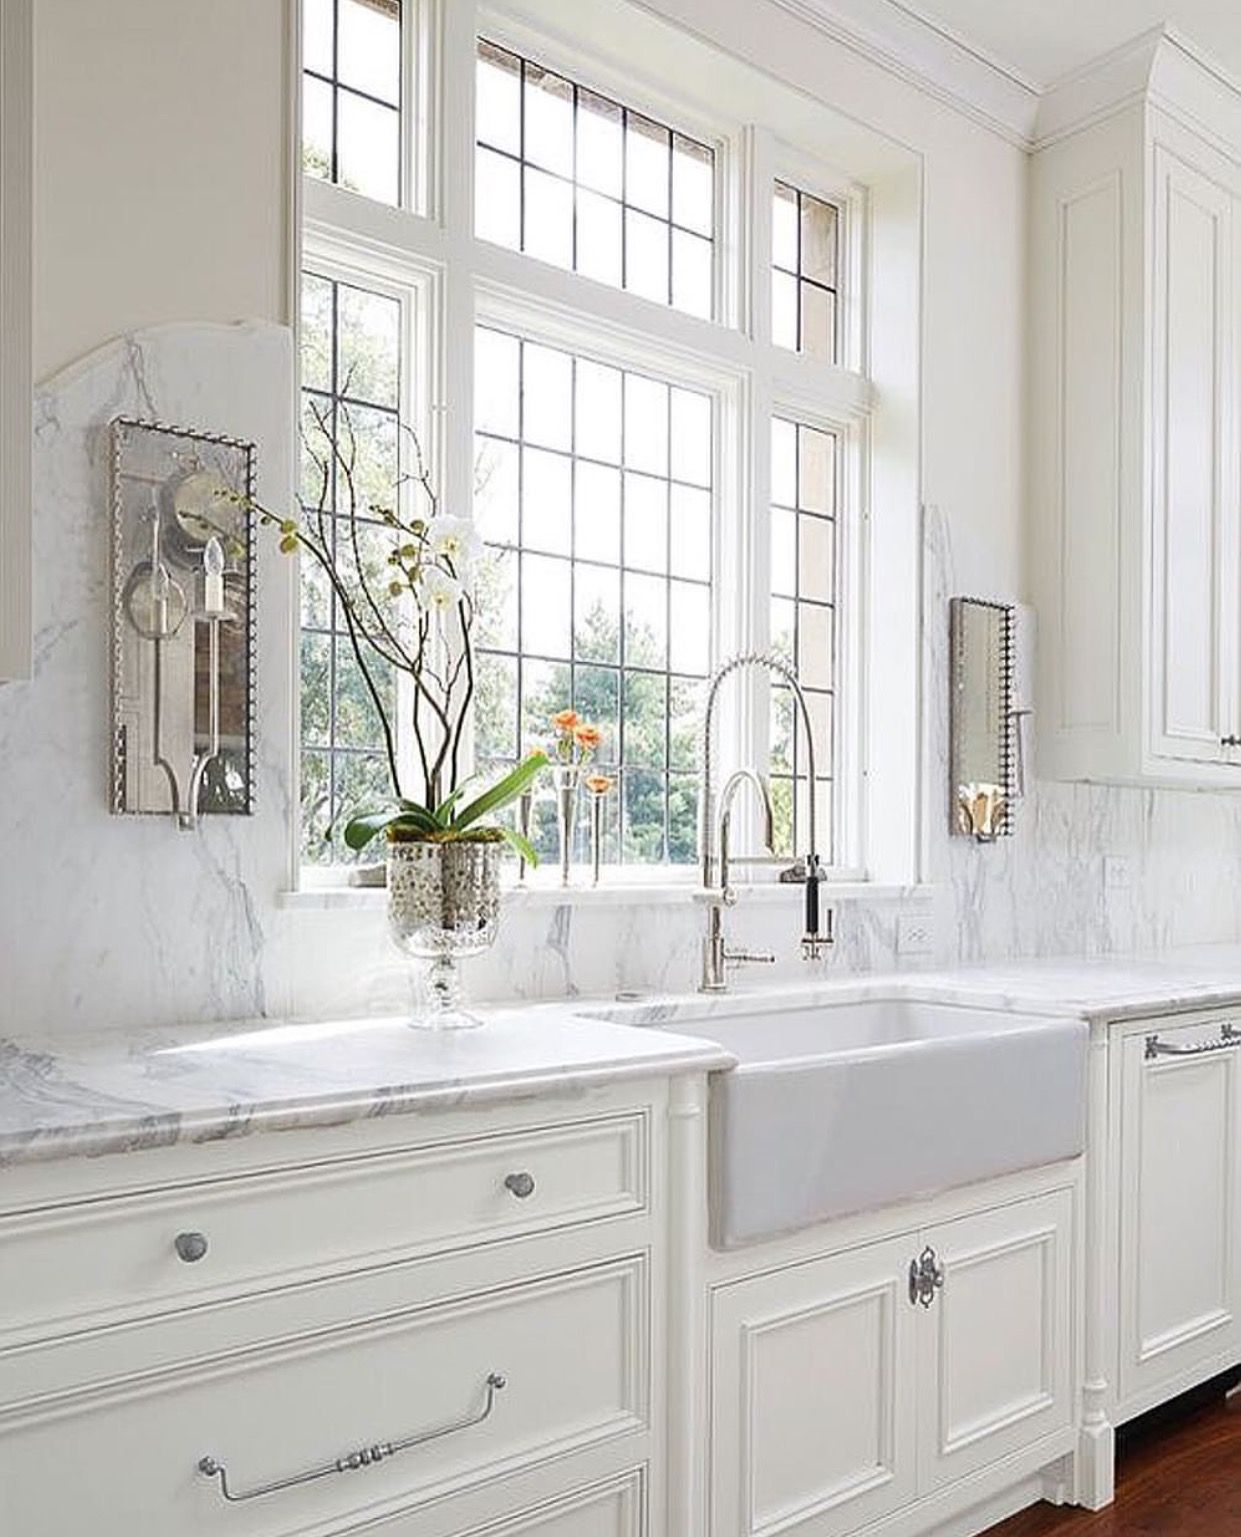 Kitchen window over sink  pin by christina daley on home inspo  pinterest  kitchens kitchen